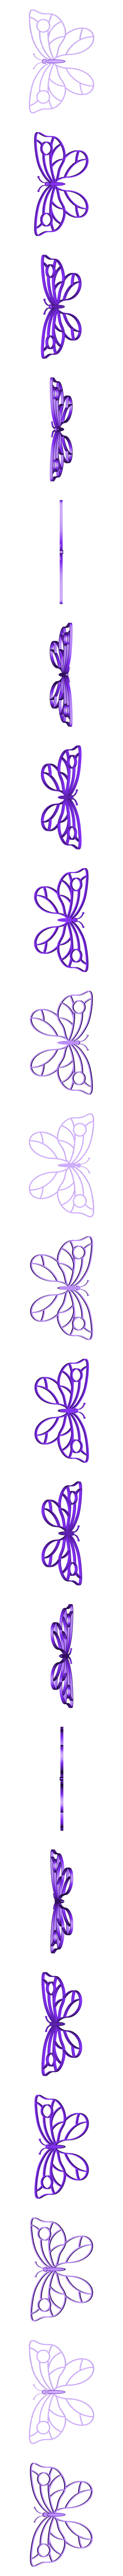 base_quilling.stl Download free STL file Quilling Butterfly • 3D print template, TanyaAkinora